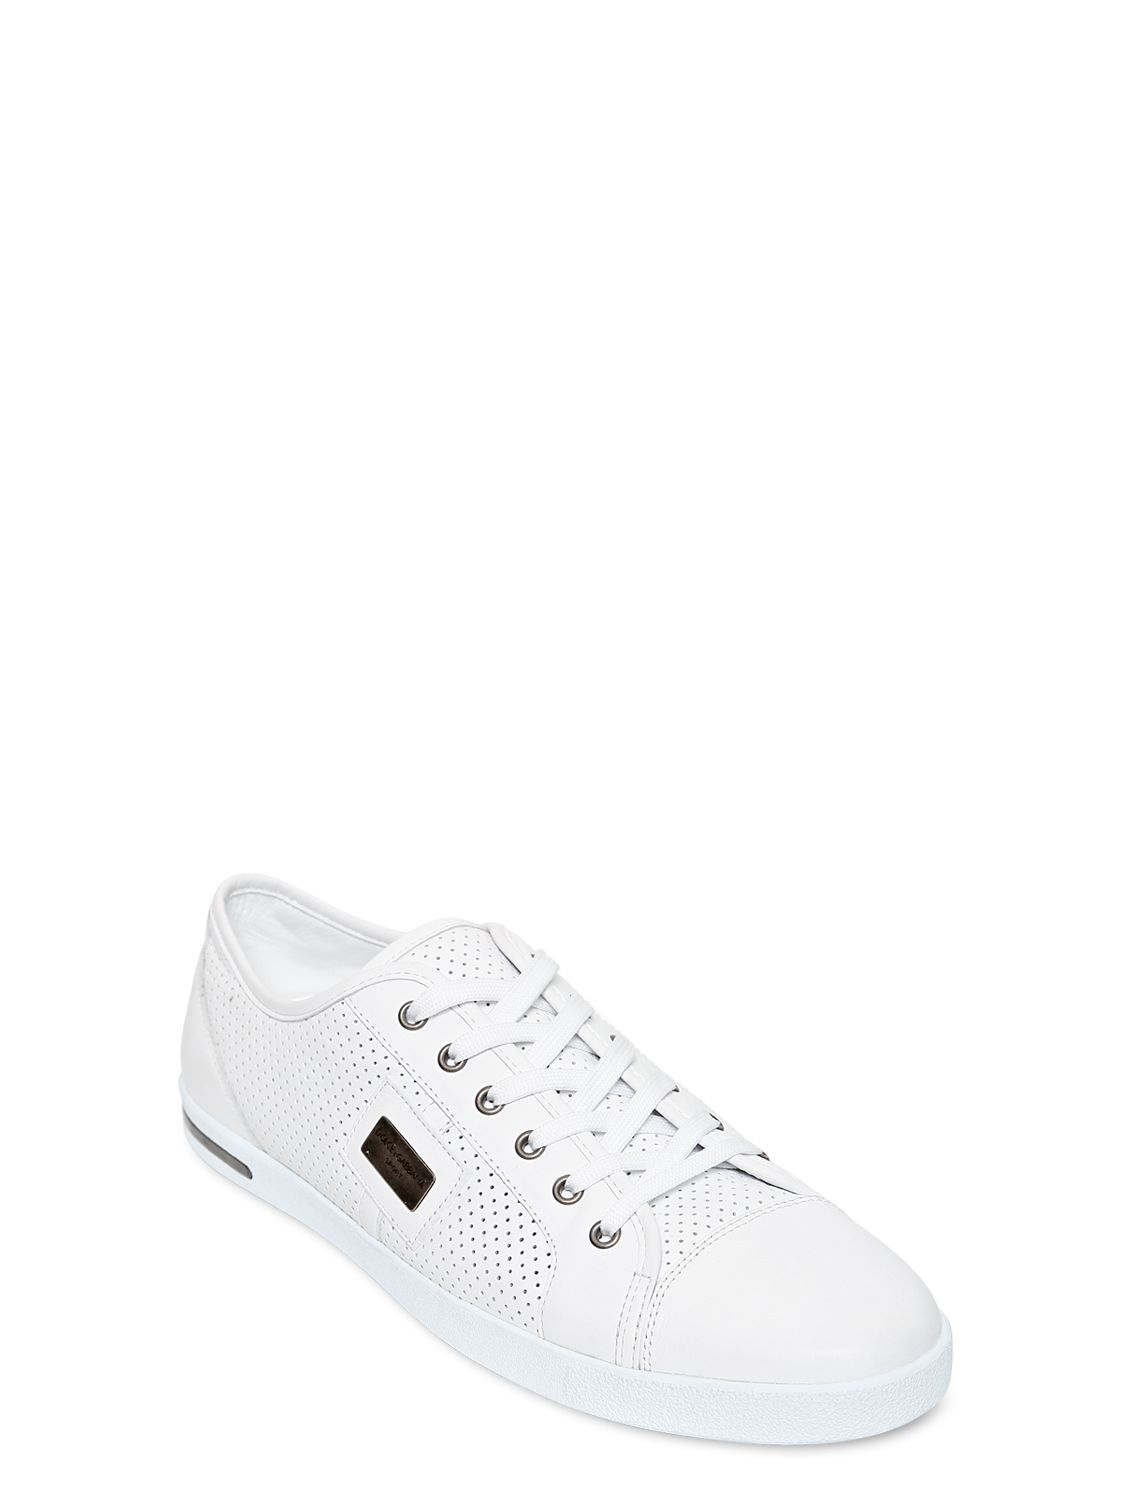 dolce gabbana uk perforated leather sneakers in white